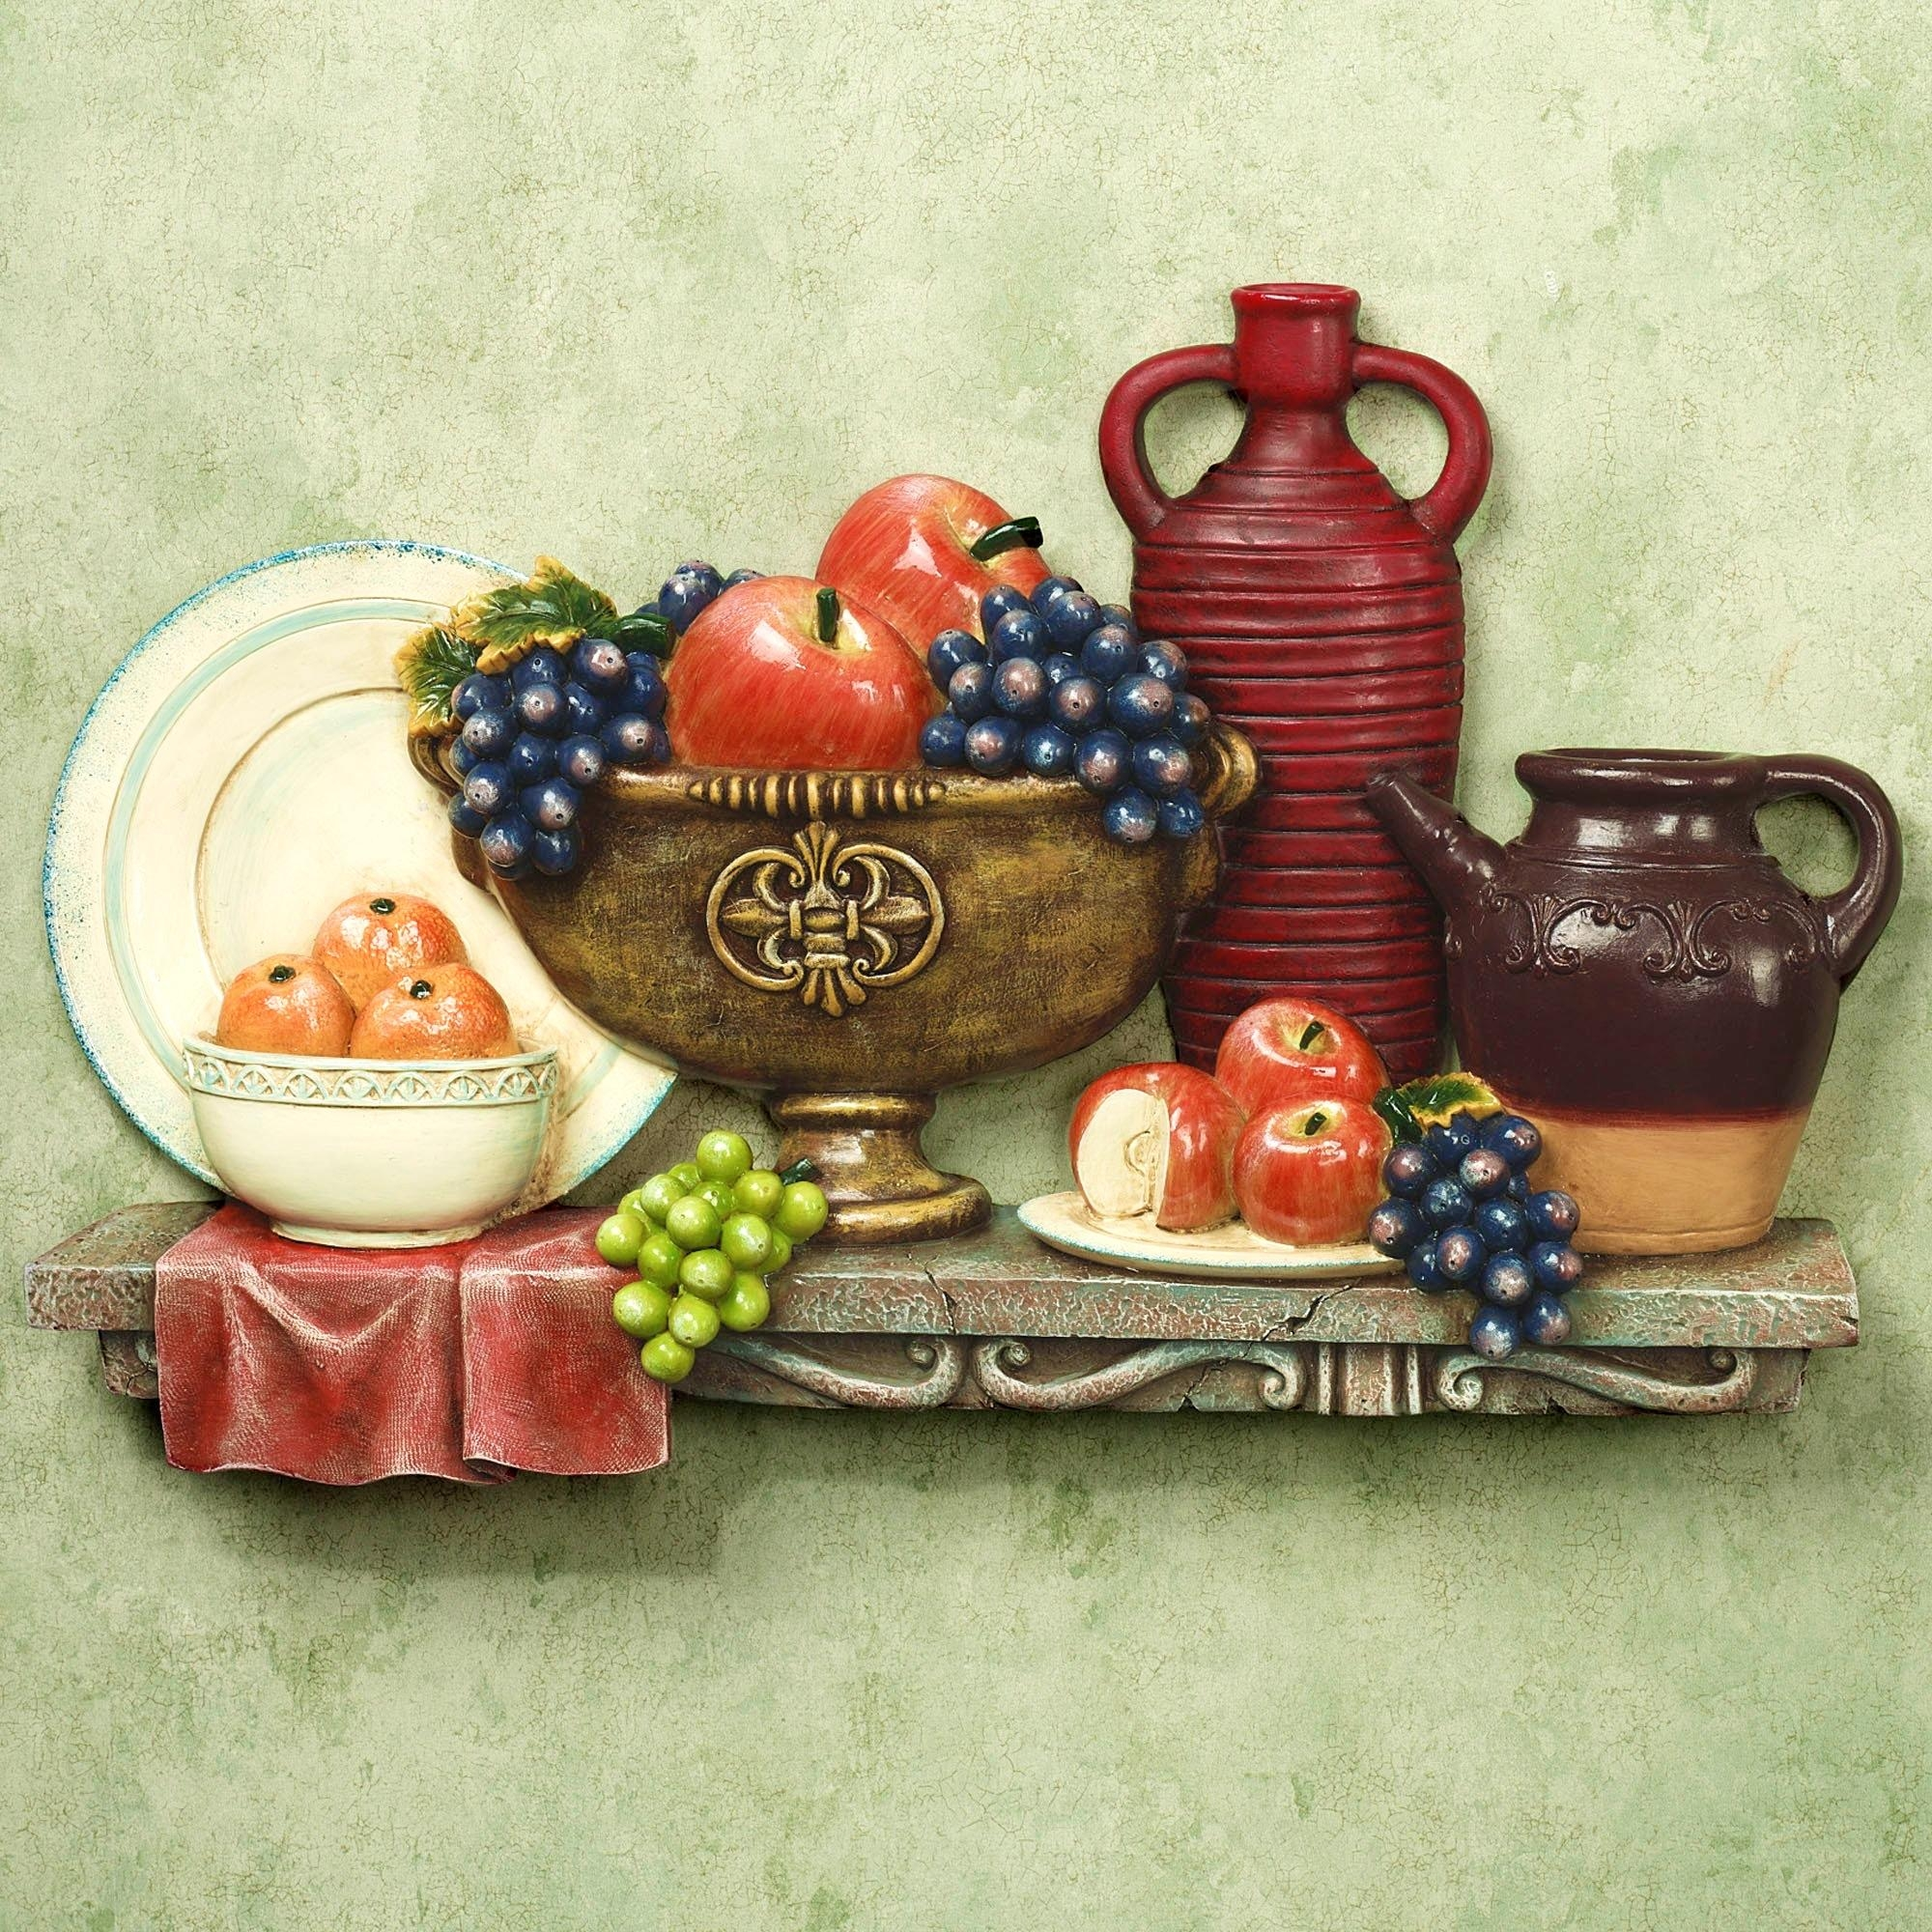 Furniture : Heavenly Kitchen And Spice Textual Art Plaque Italian With Regard To Italian Plaques Wall Art (Image 7 of 20)